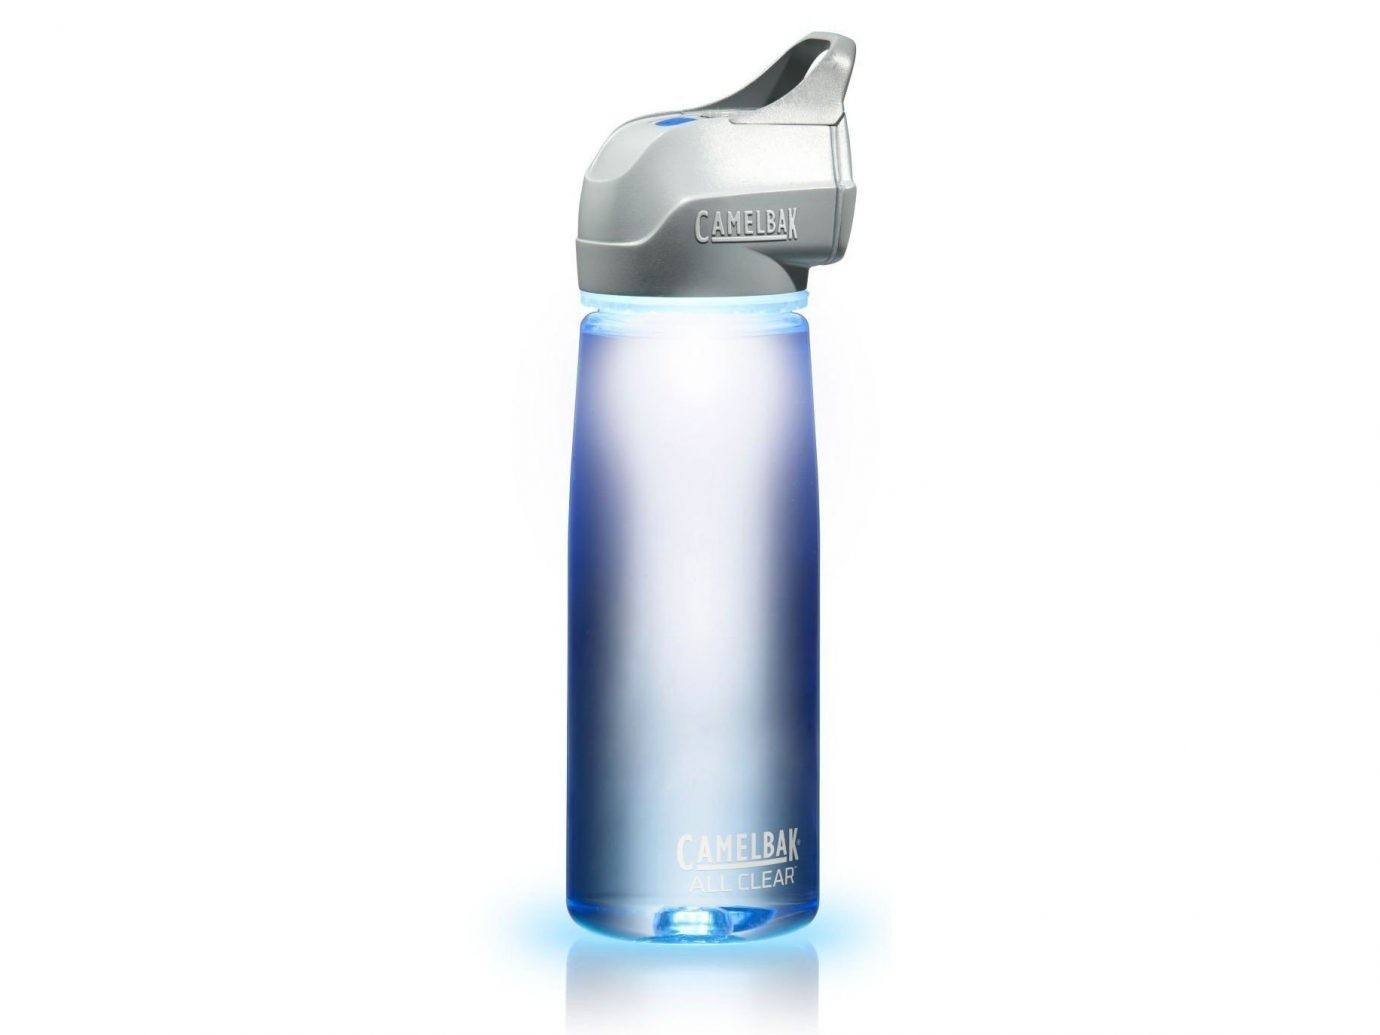 Style + Design bottle indoor water product drinkware tableware plastic bottle home accessories colored